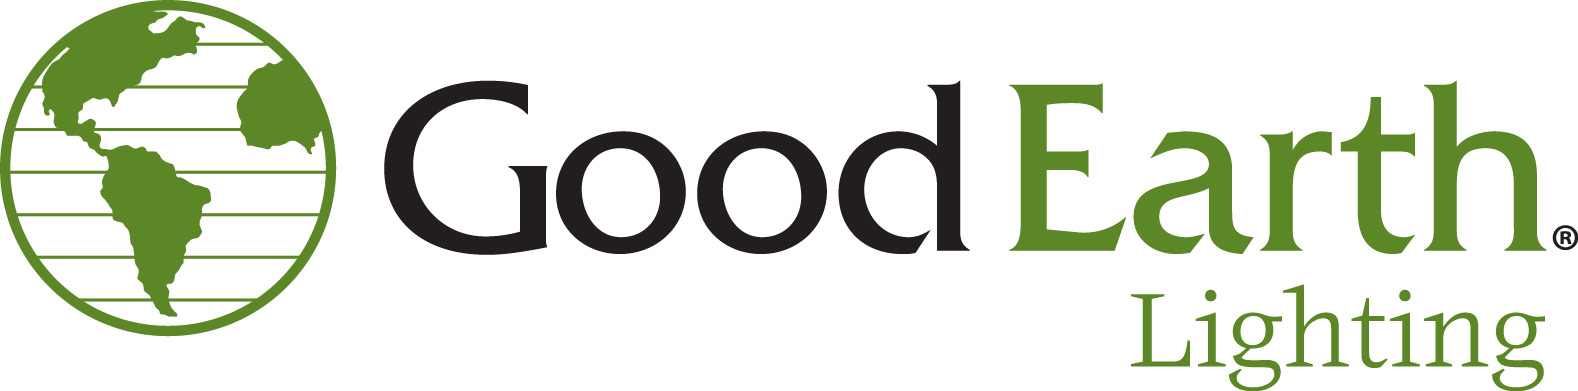 Good Earth Lighting Logo